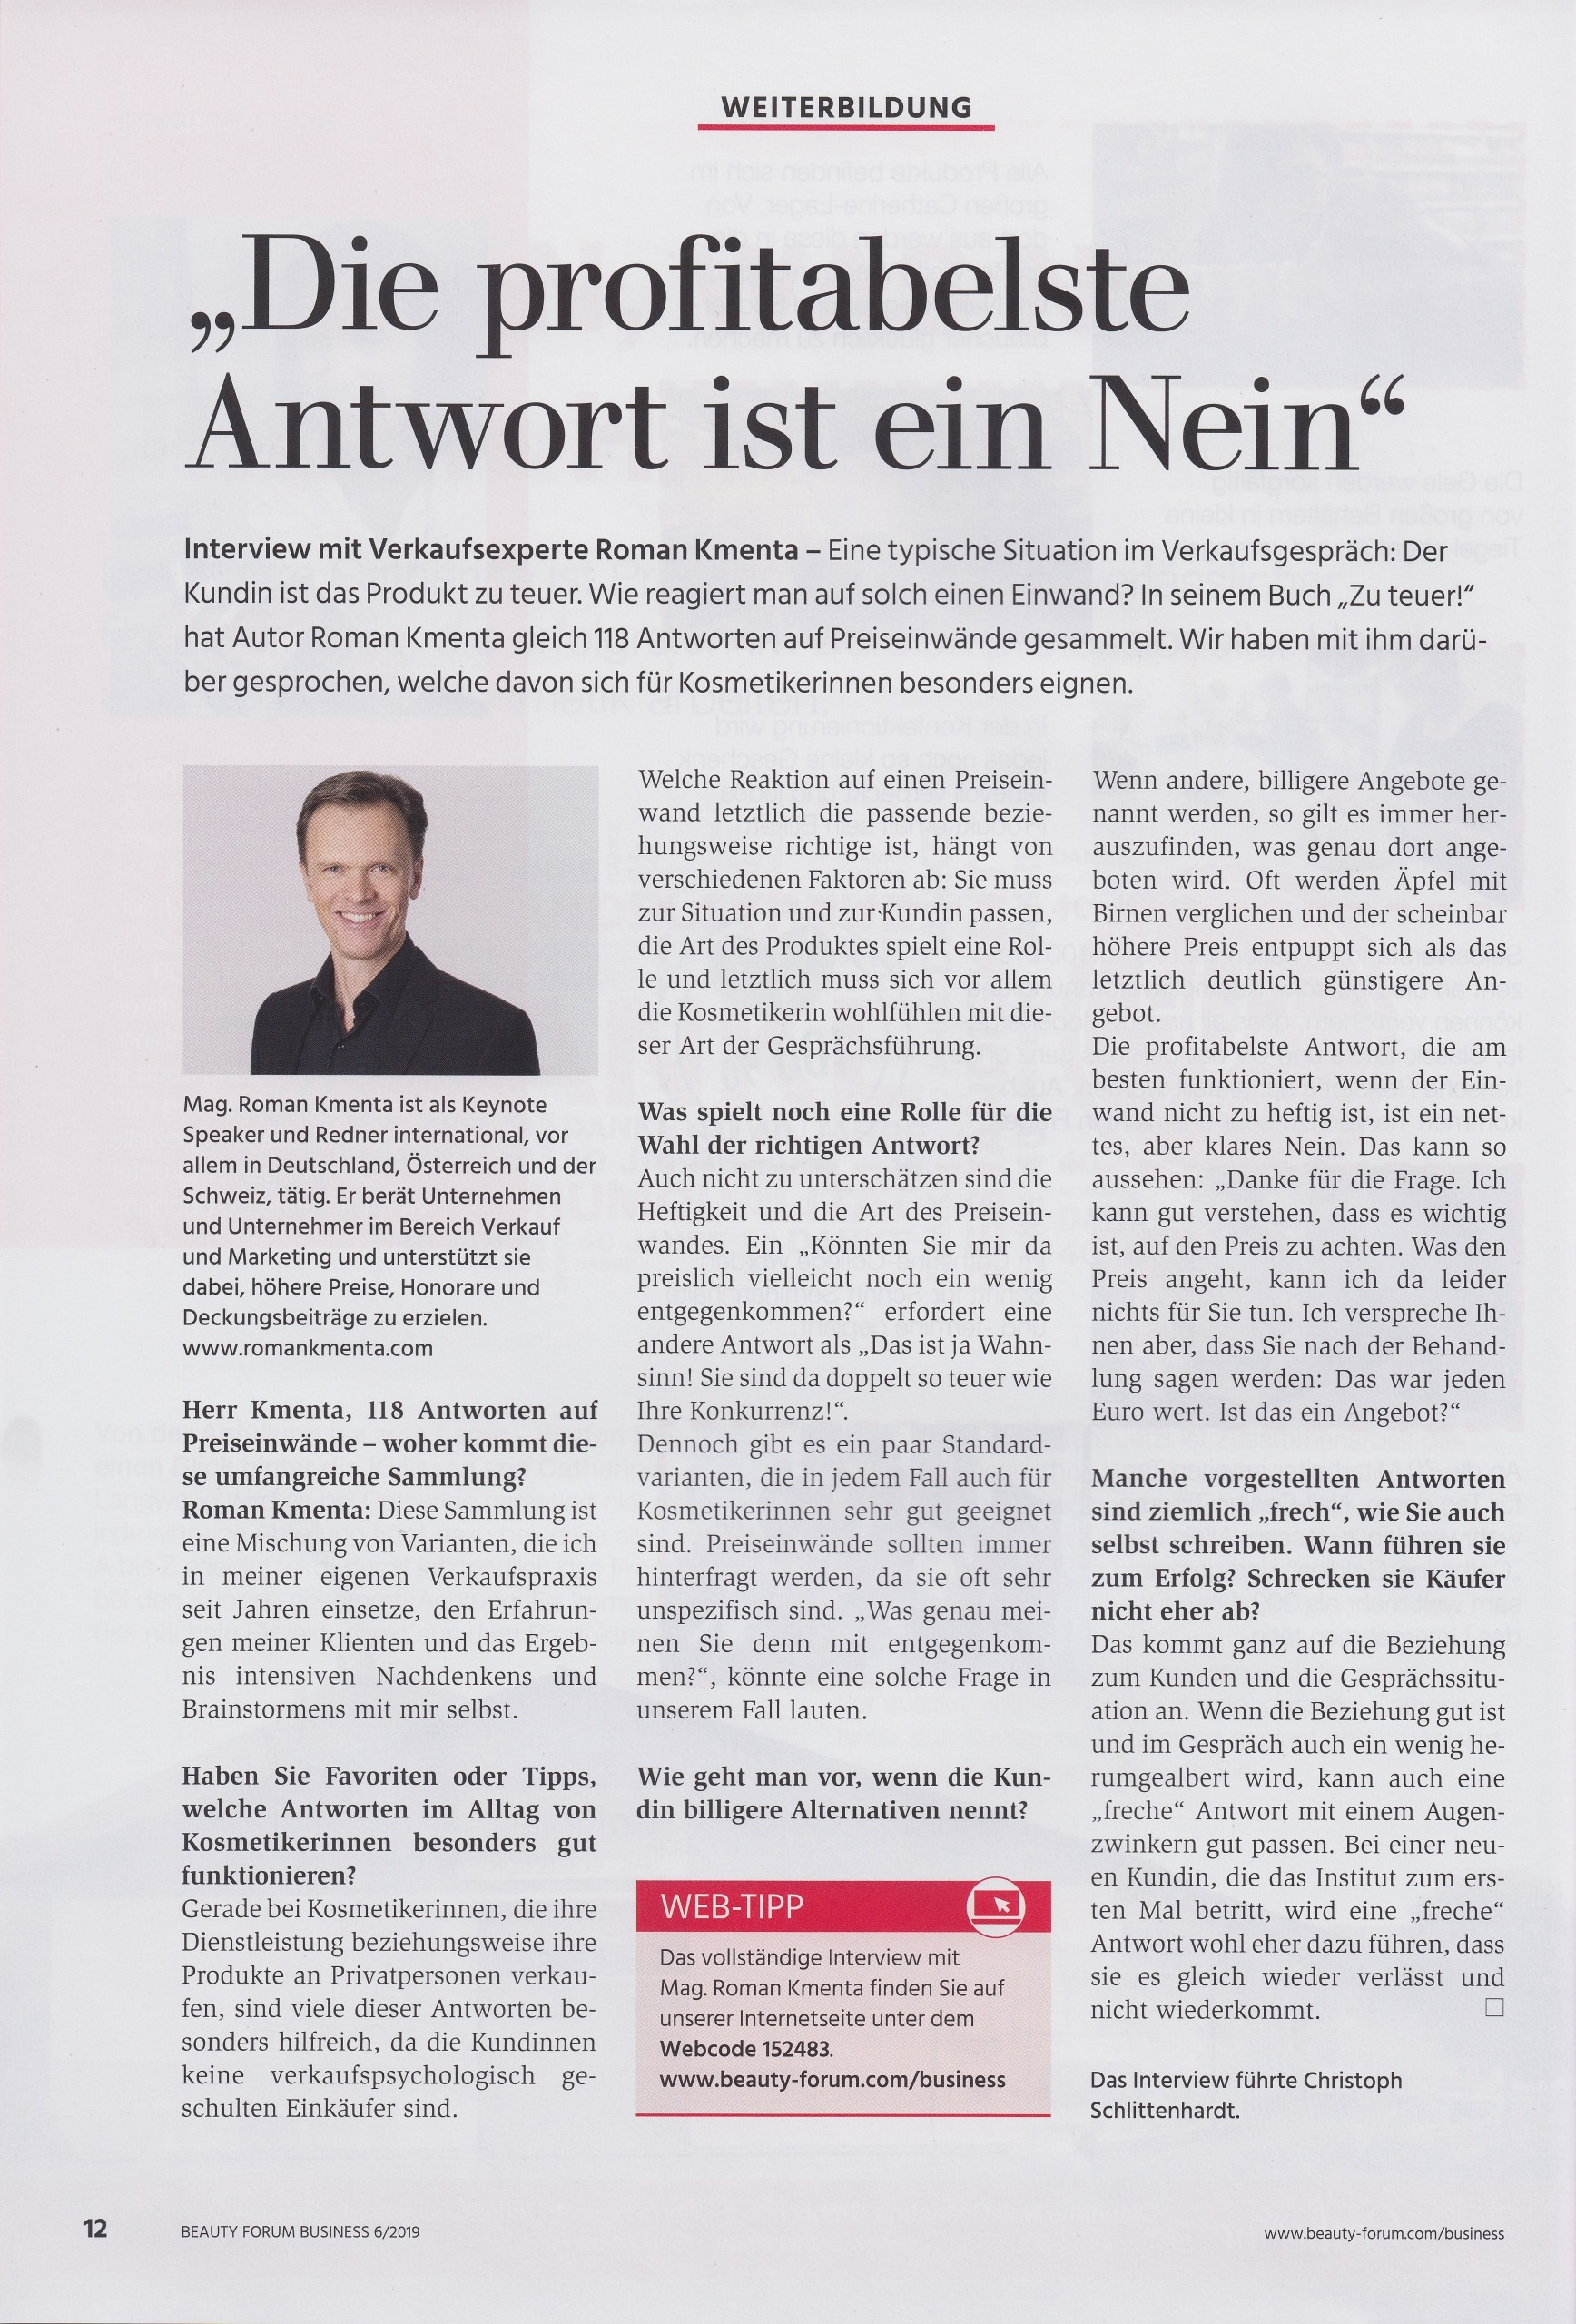 Die profitablste Antwort ist NEIN - Interview mit Roman Kmenta - Beauty Forum Business - 6 2019 Cover